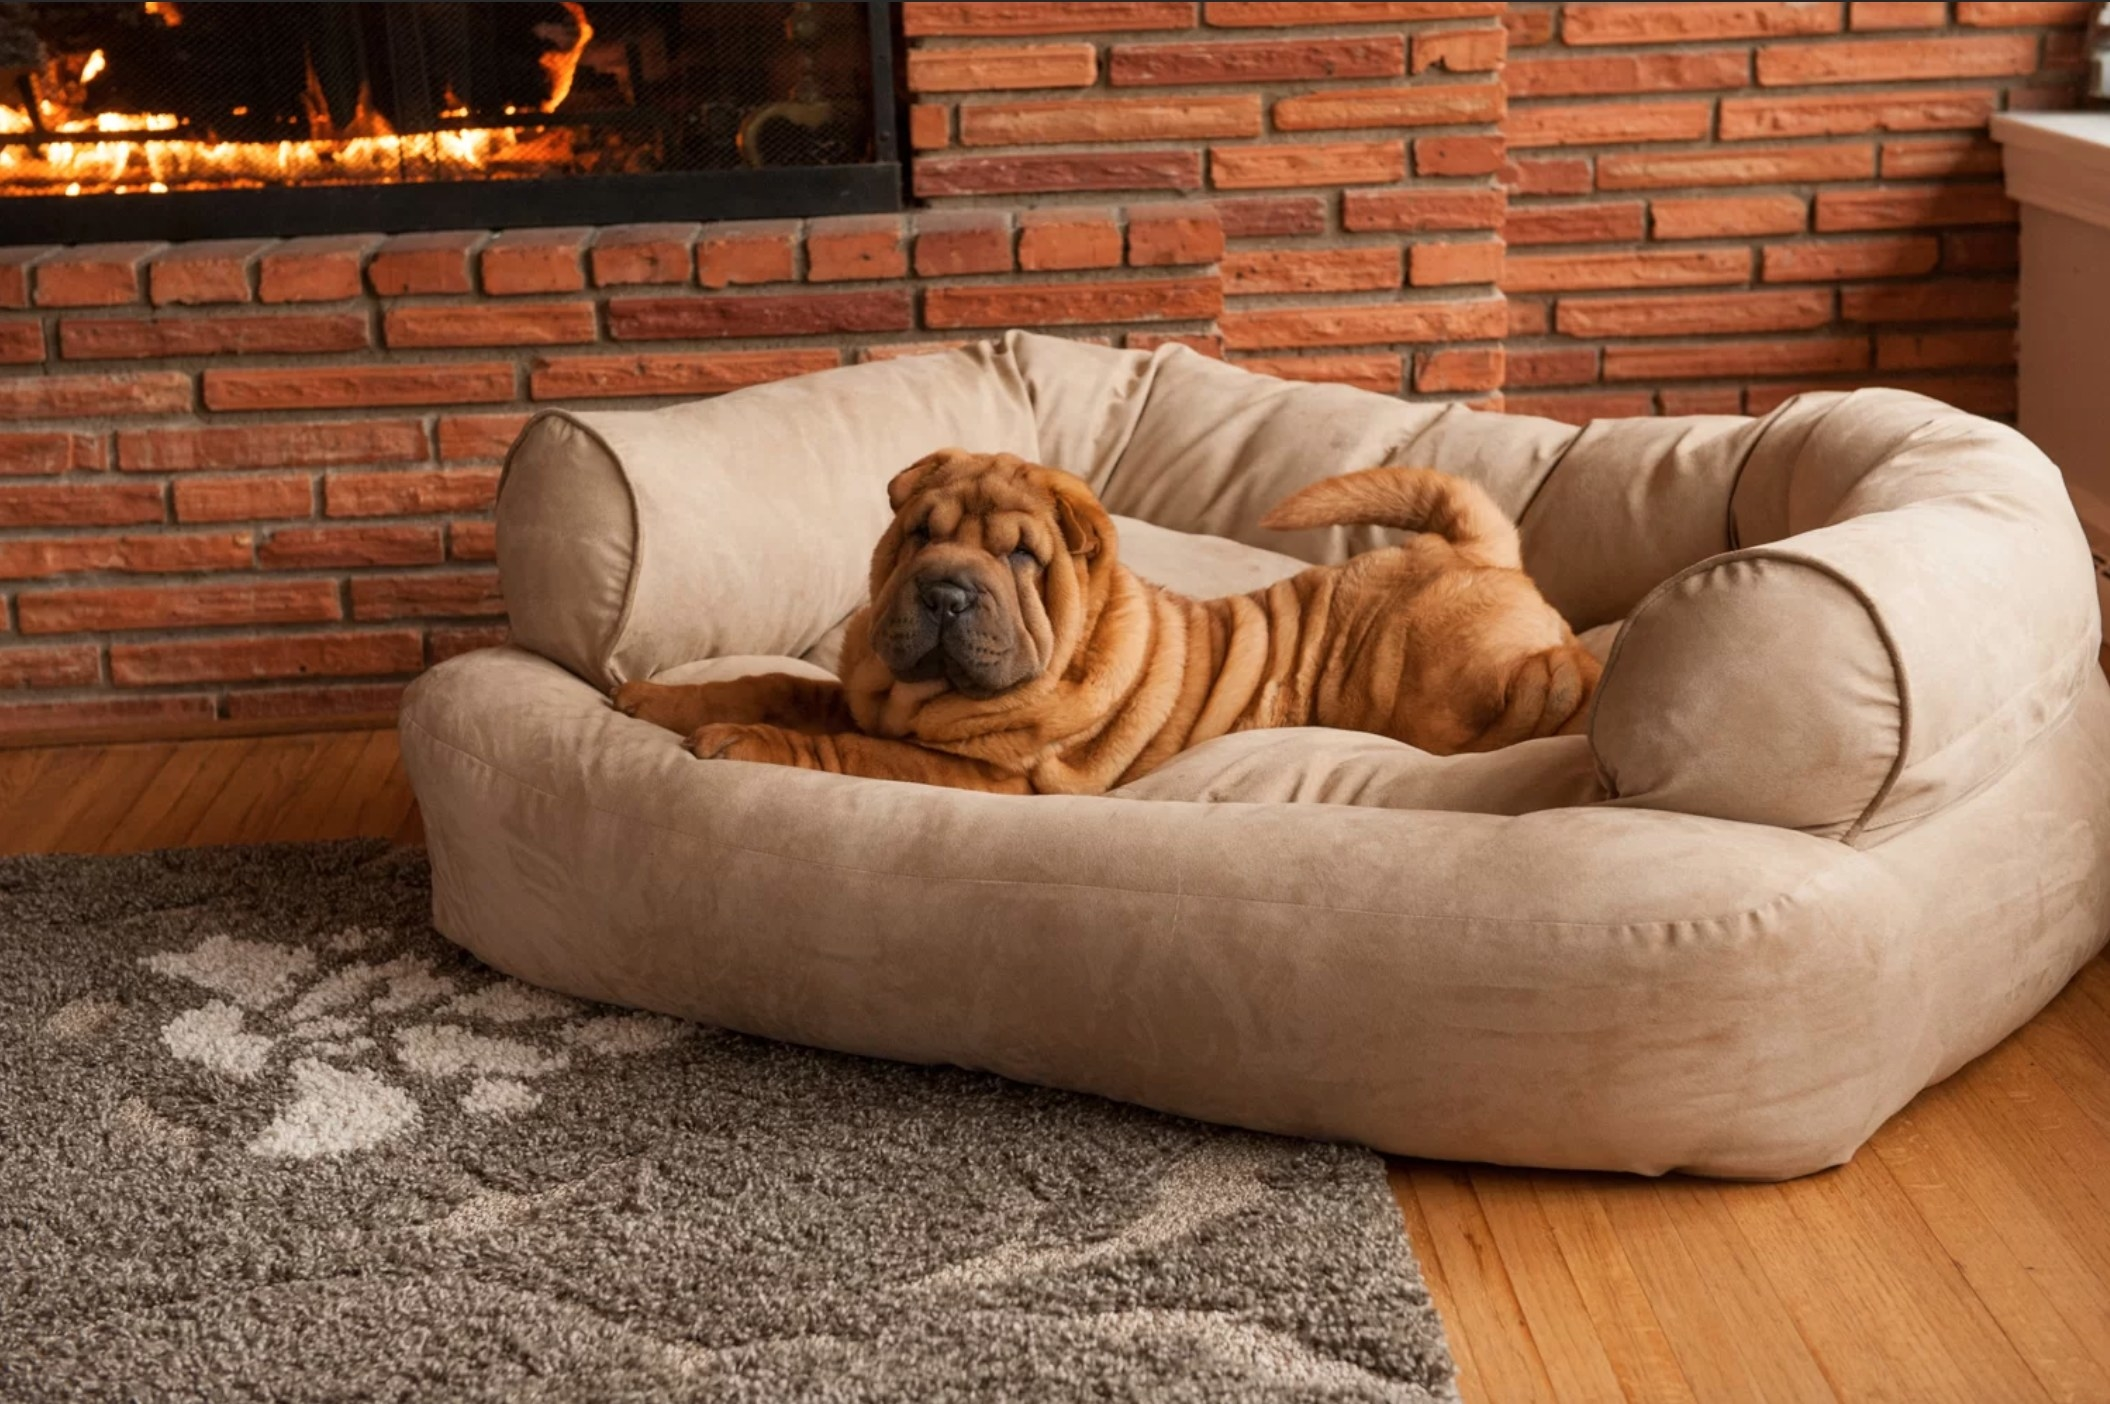 The overstuffed luxury bolster in buckskin